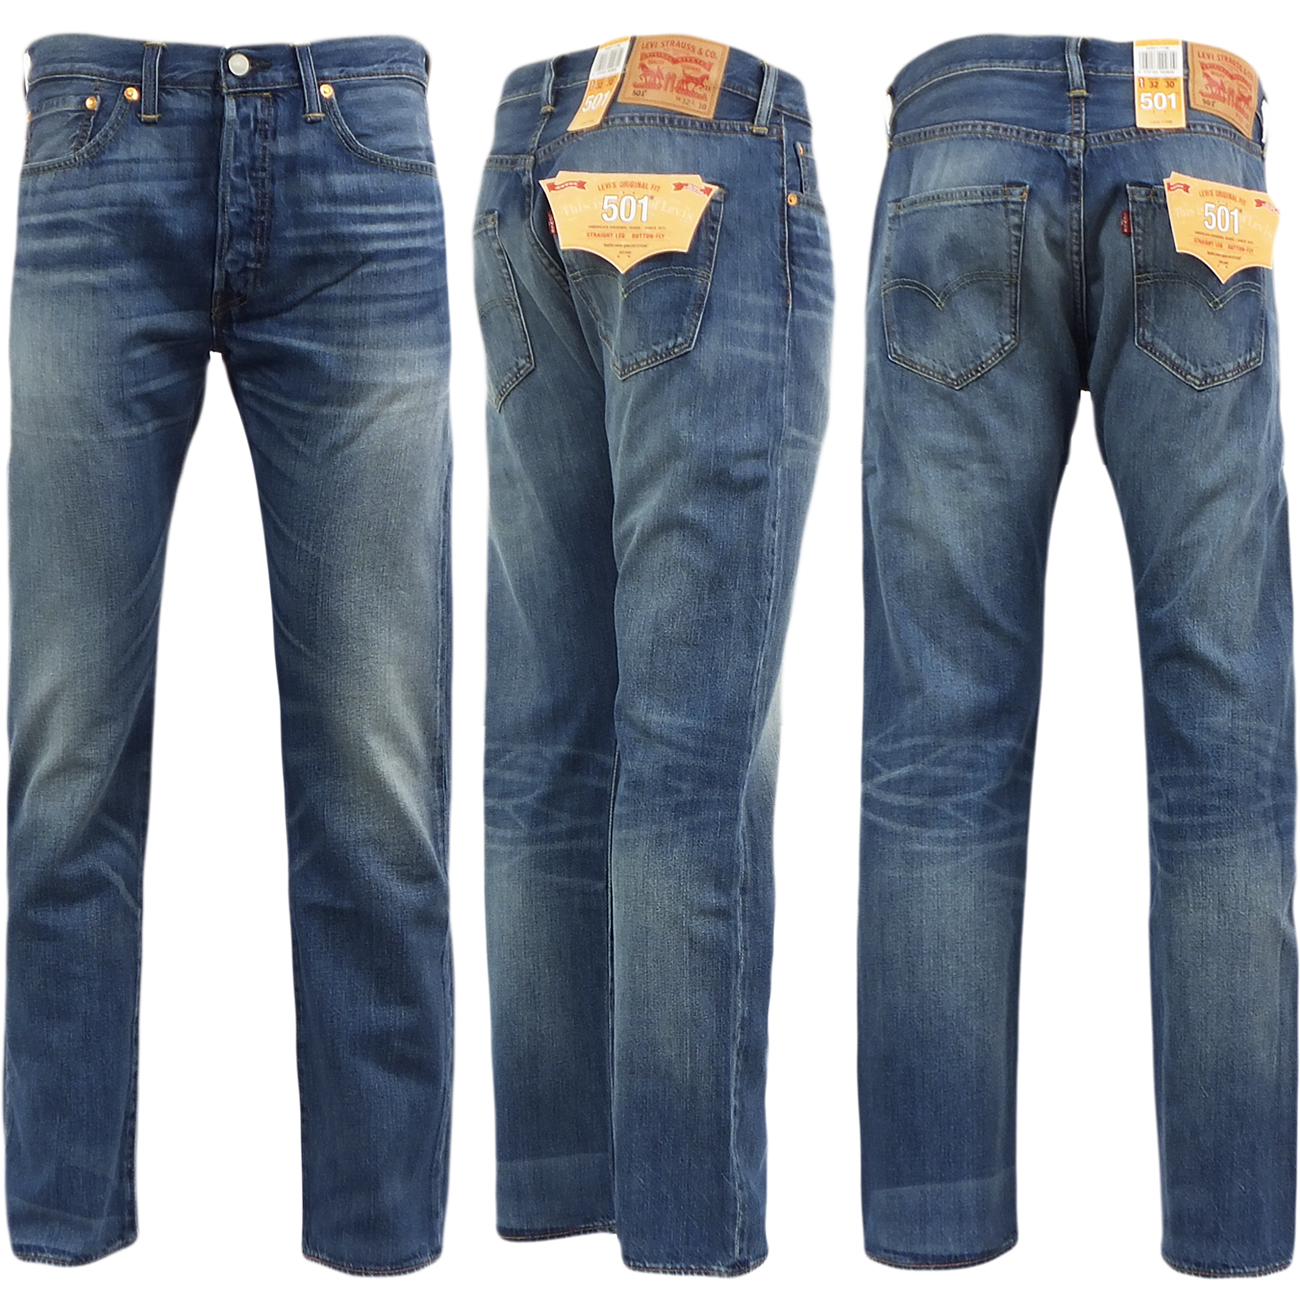 Most Expensive Jeans in 2016